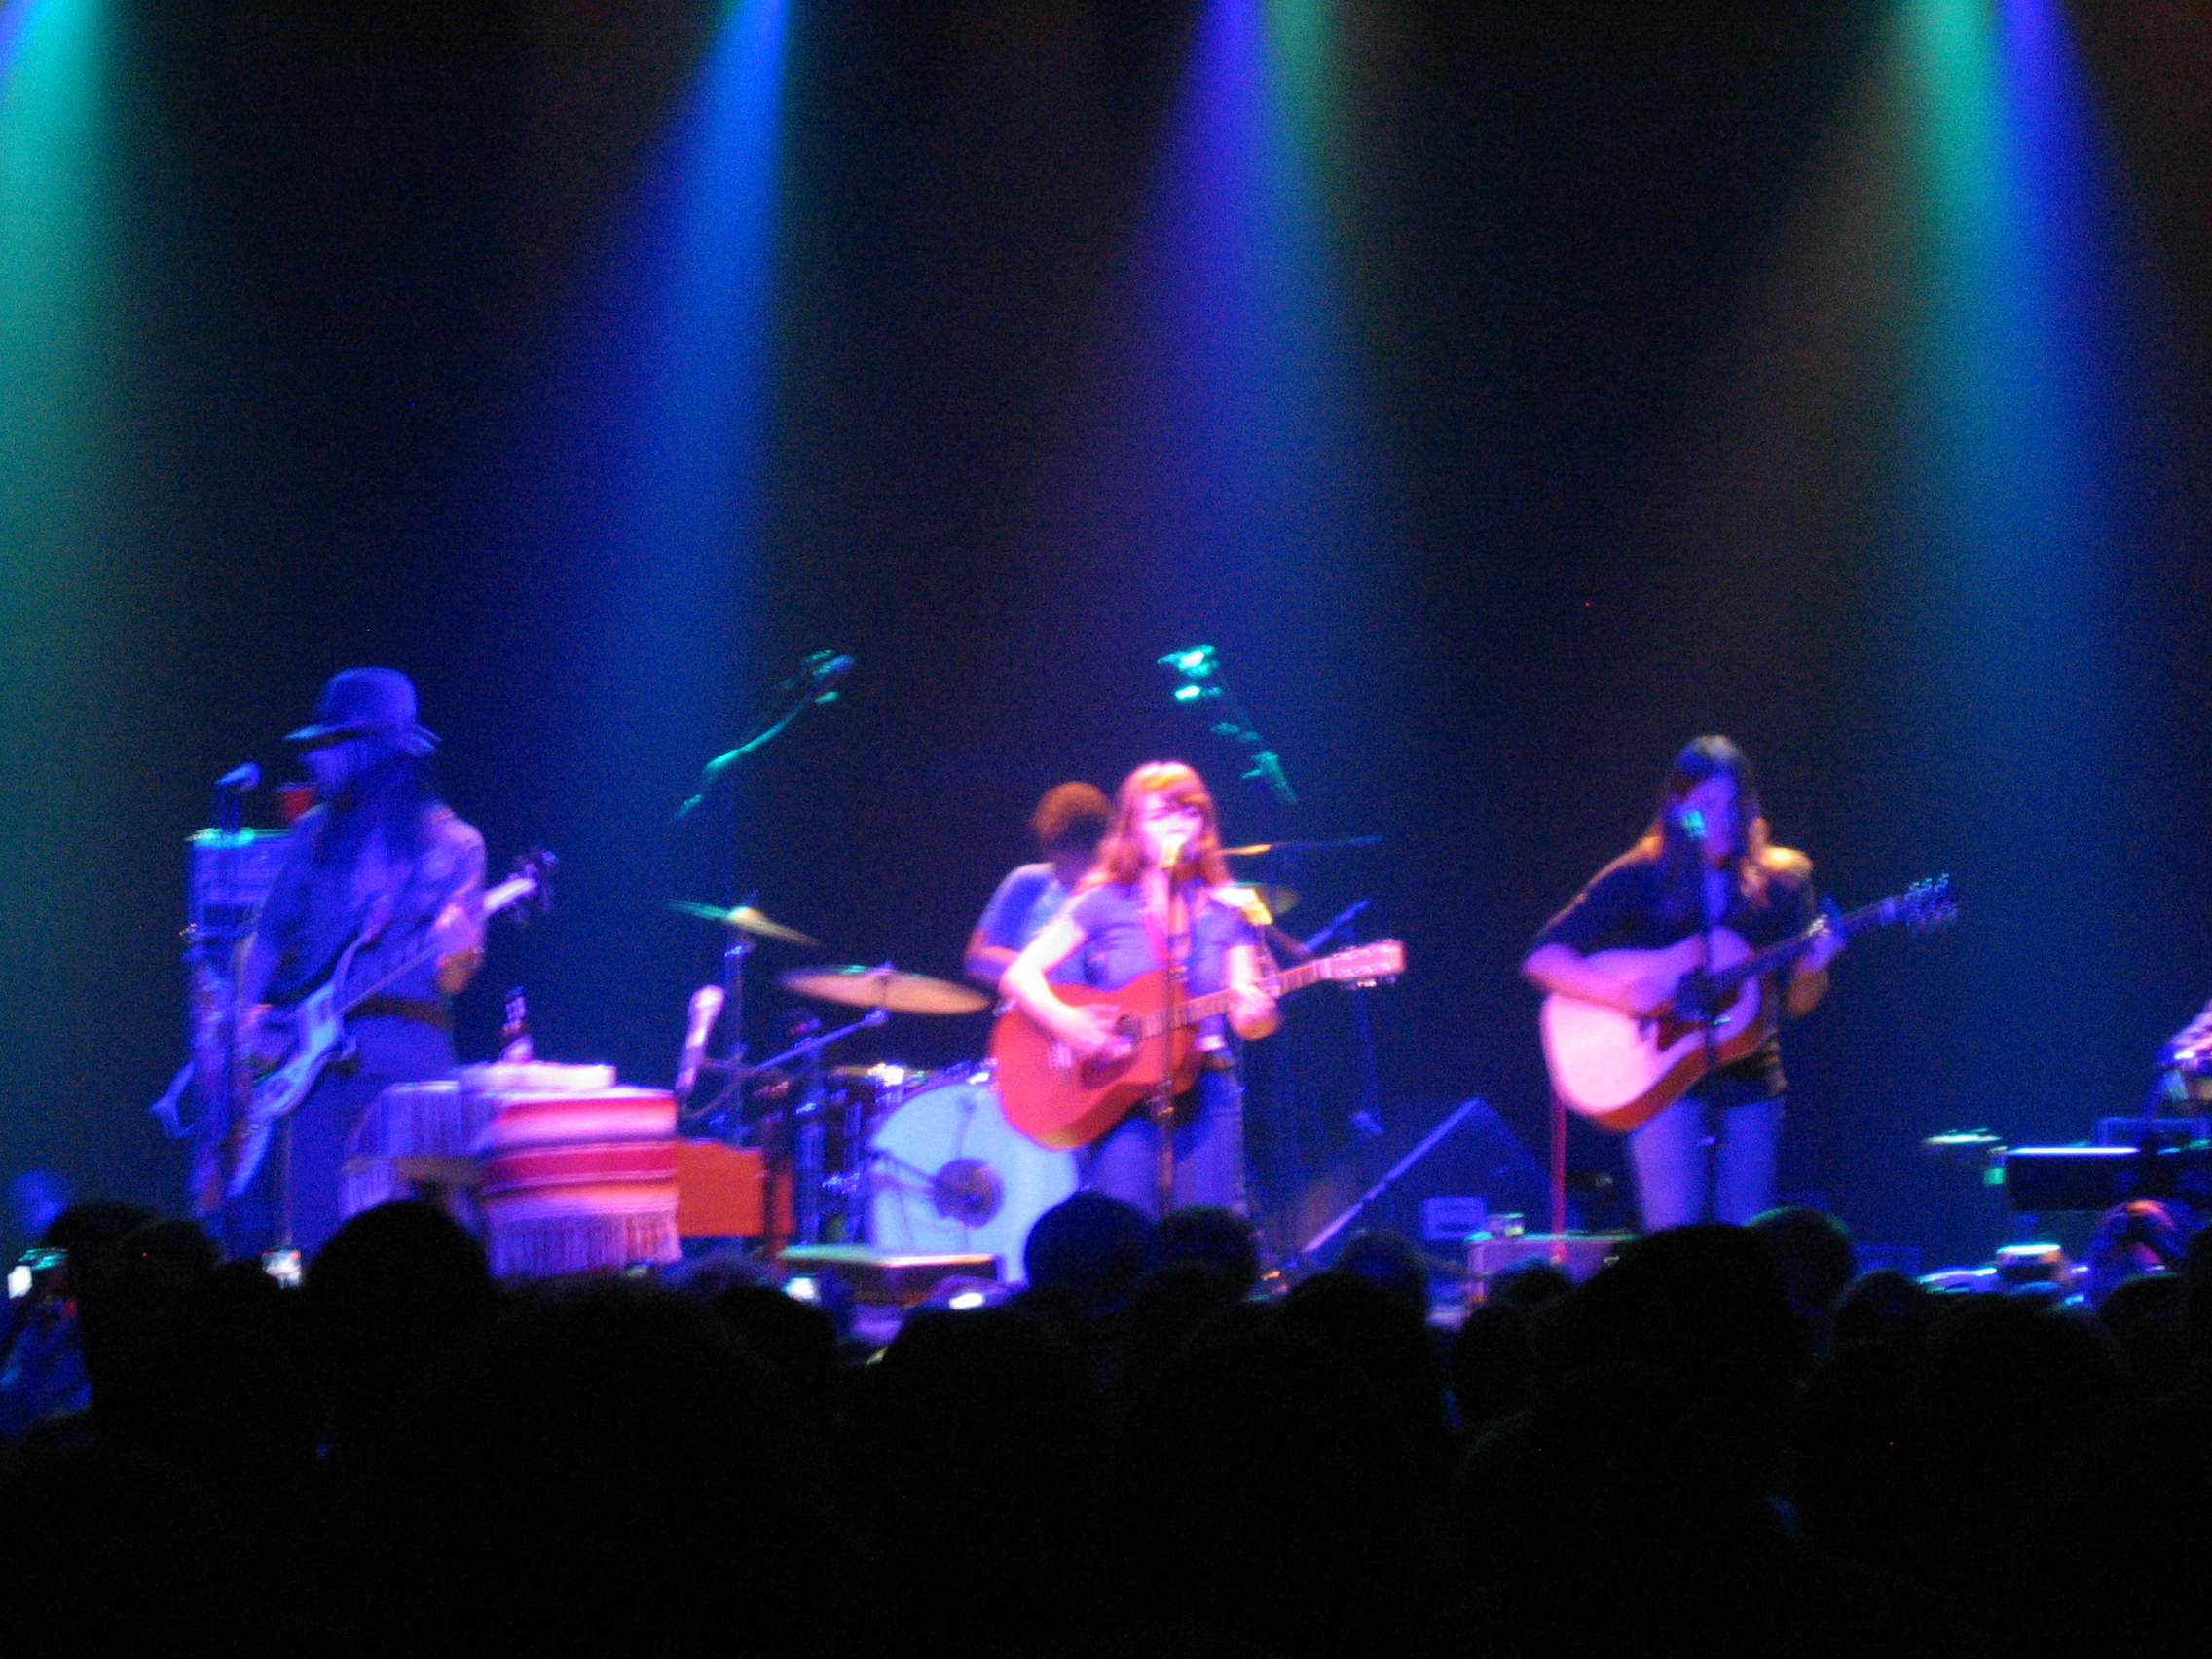 Jenny Lewis at the Variety Playhouse